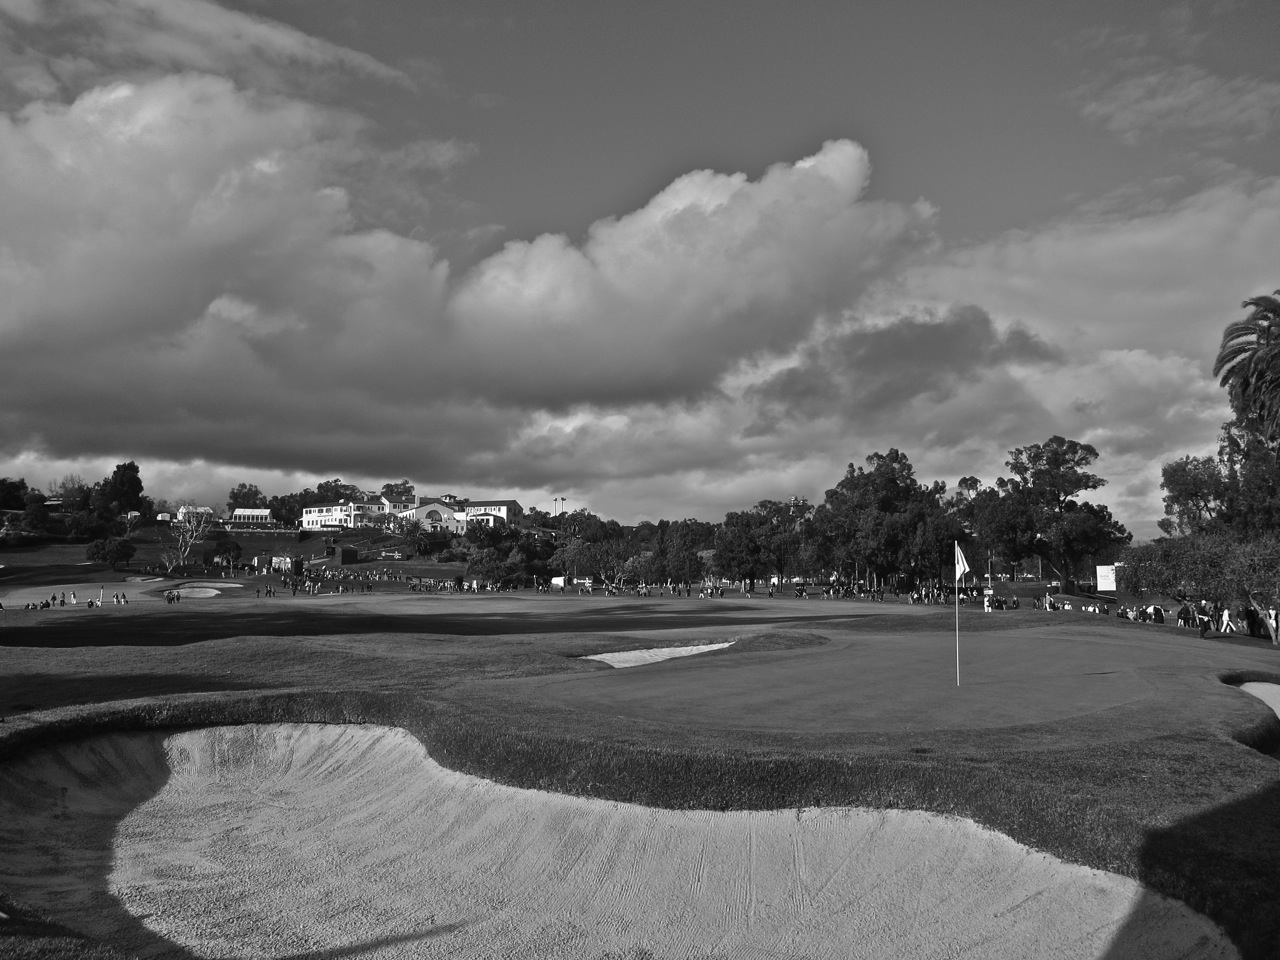 Looking Back from Behind the Tenth Green (Shackelford)